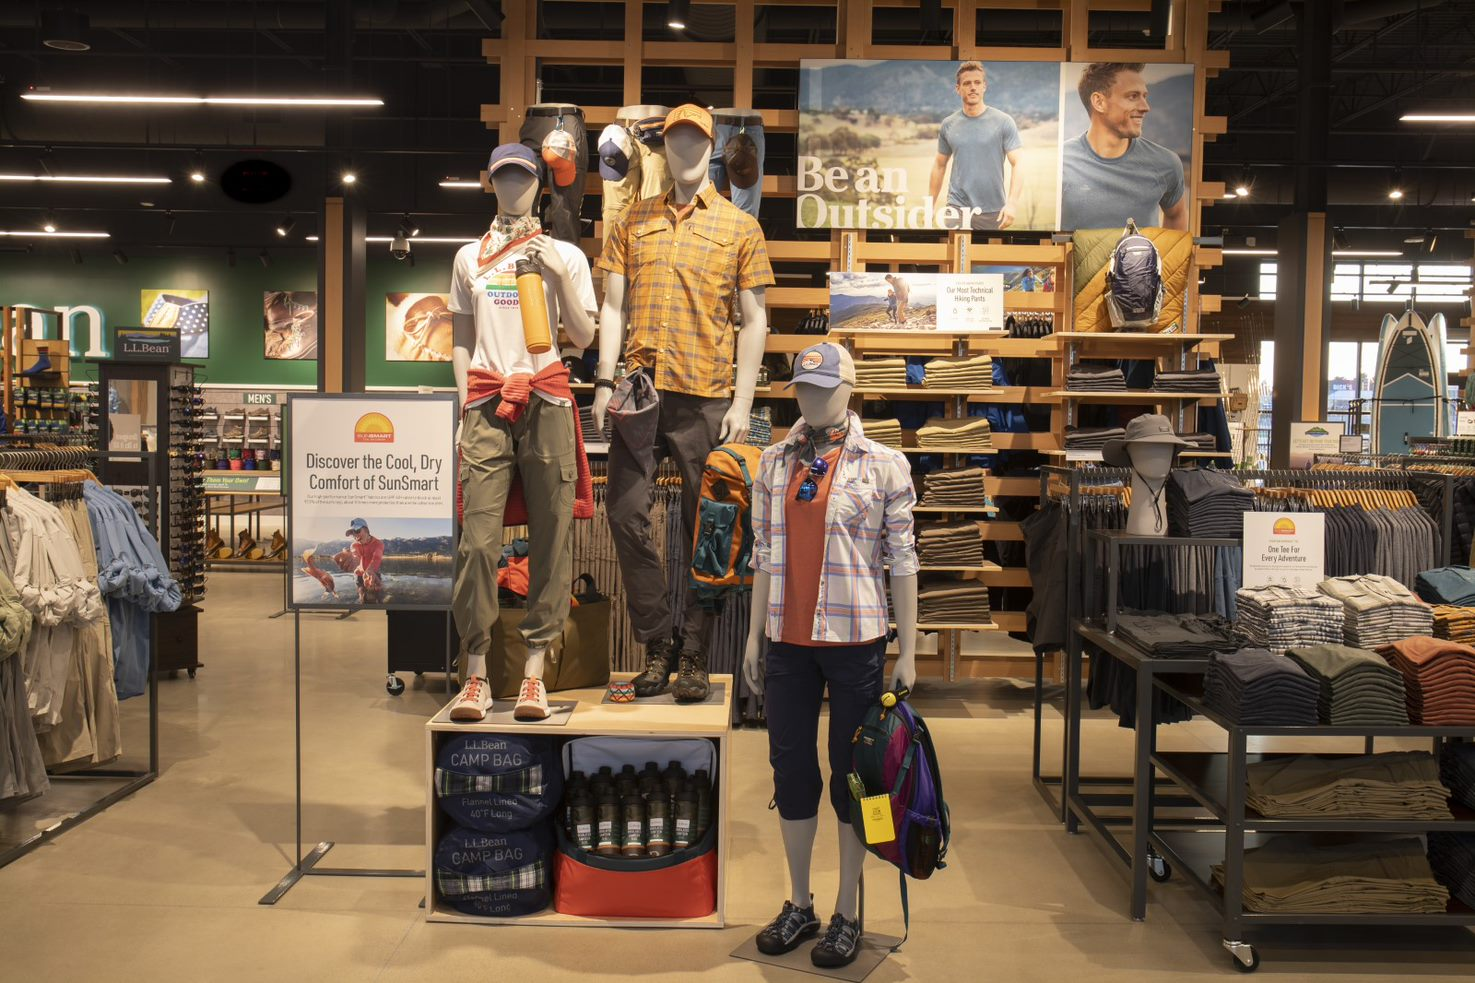 The interior of the upcoming L.L. Bean store in Salem, N.H., which is set to open on May 14.